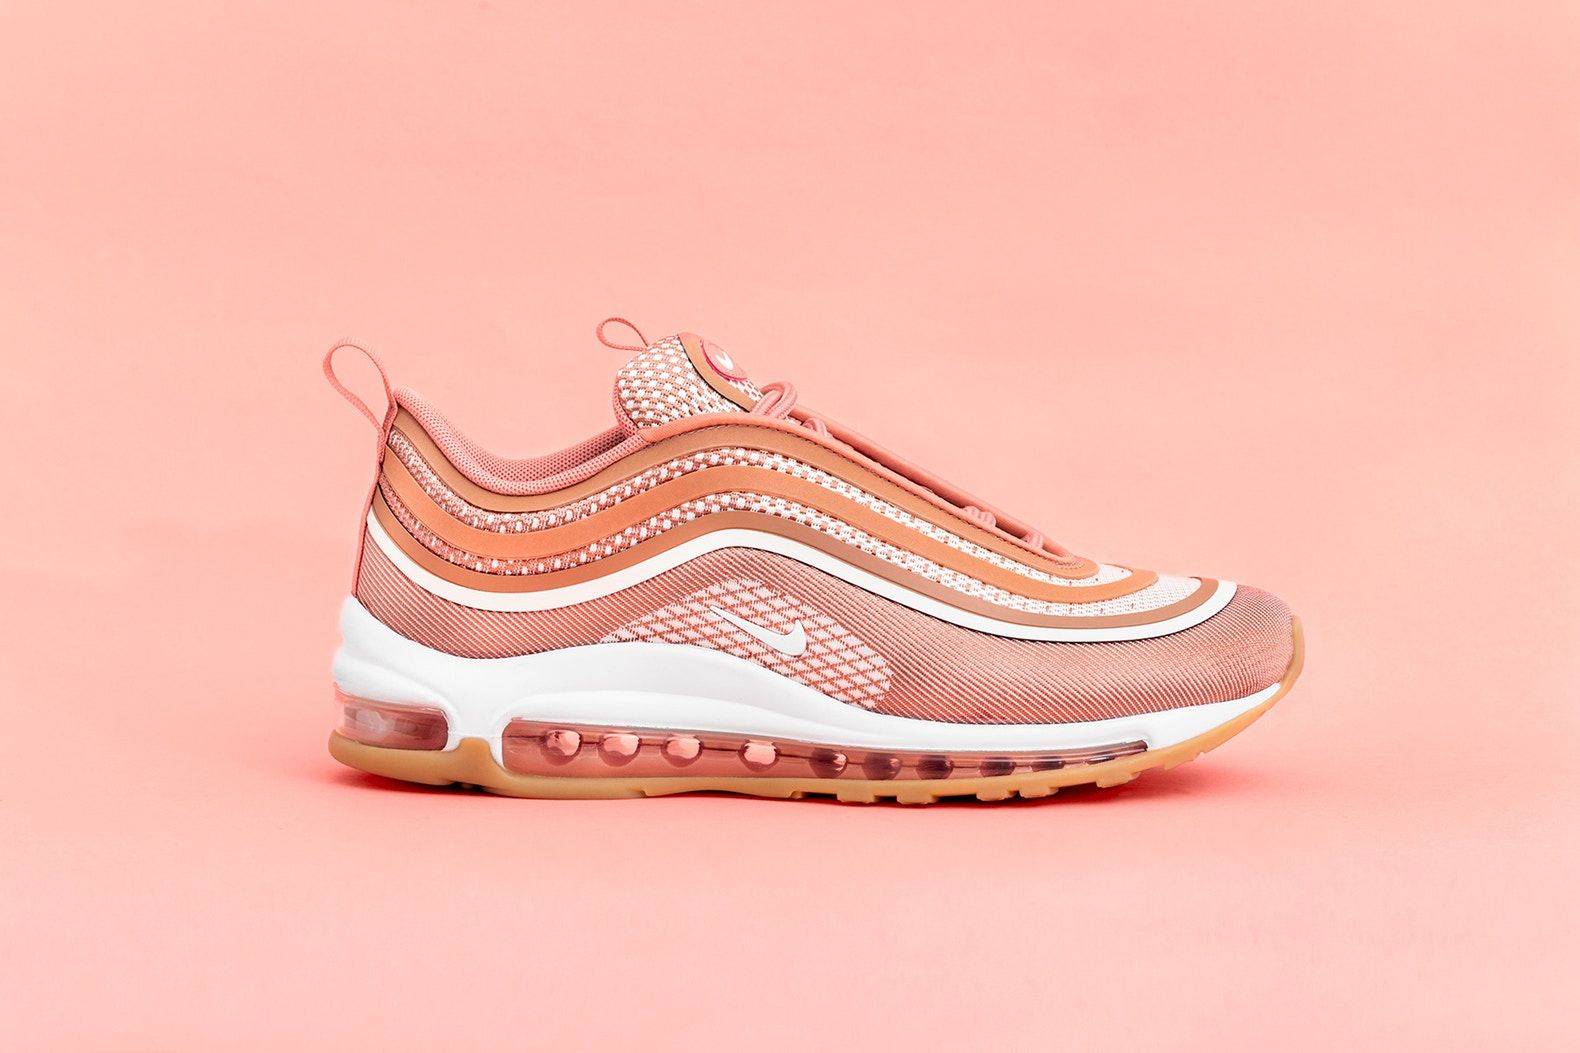 8e967b7f12 Take a Closer Look at the Nike Air Max 97 Ultra